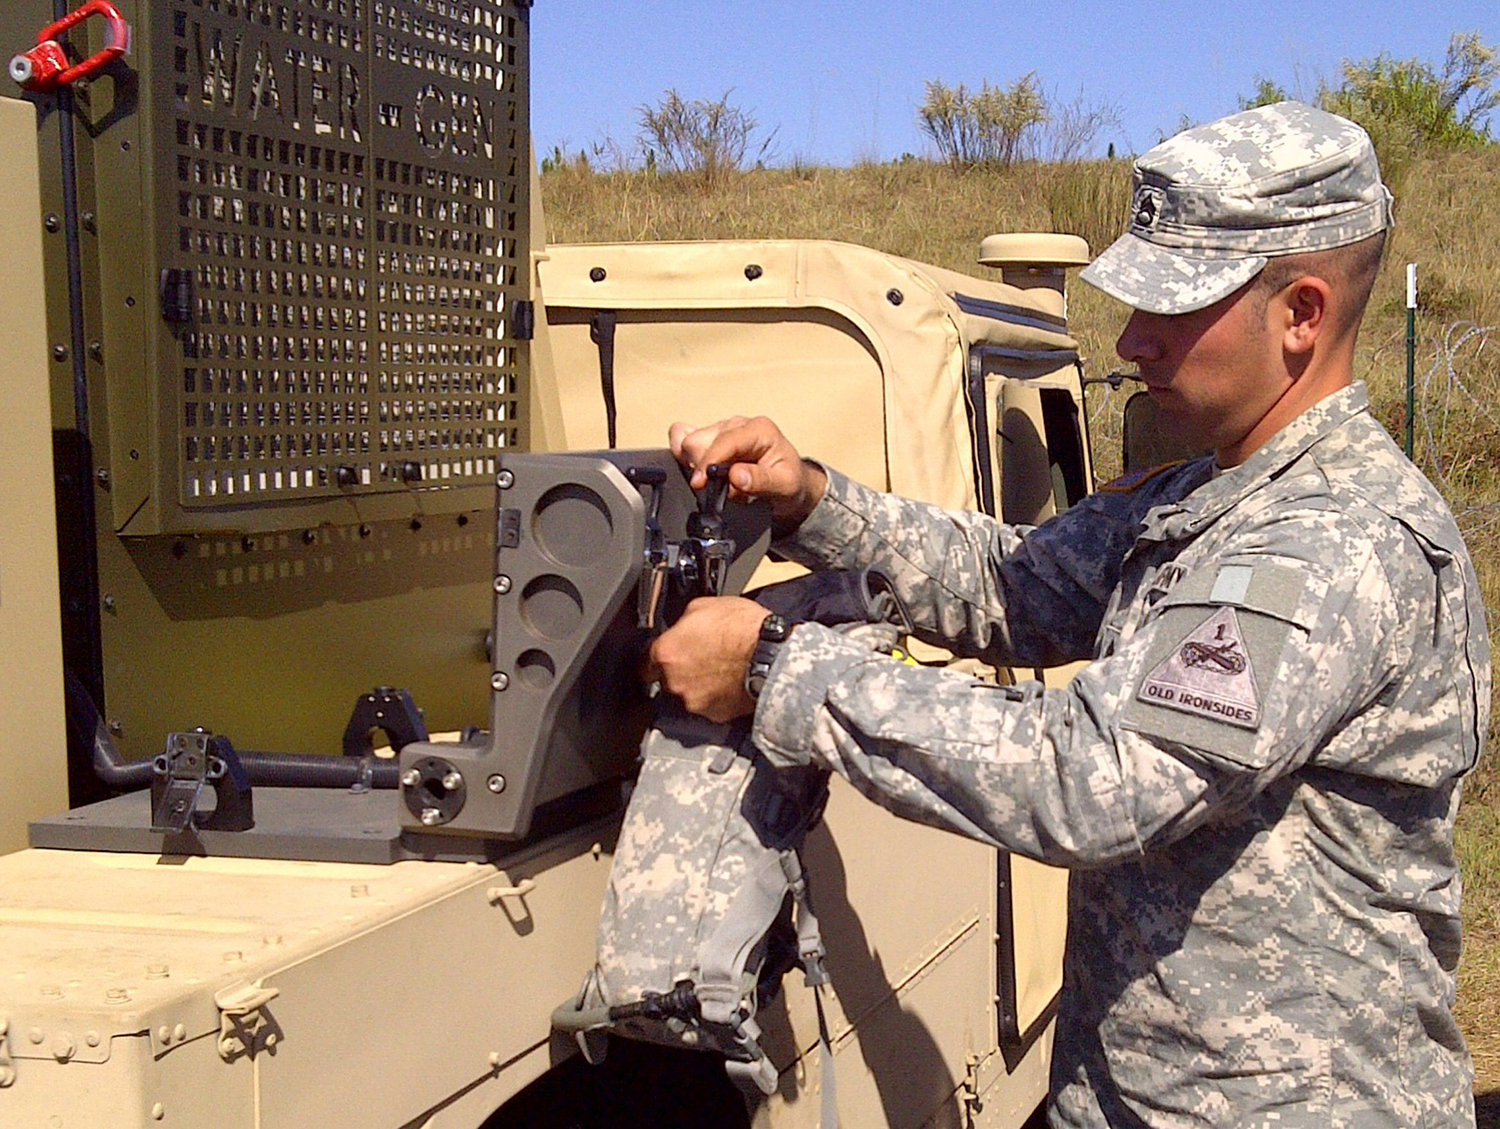 A U.S. Army member pours water generated by Water-Gen's Atmospheric Water-Generation Unit during an exercise.